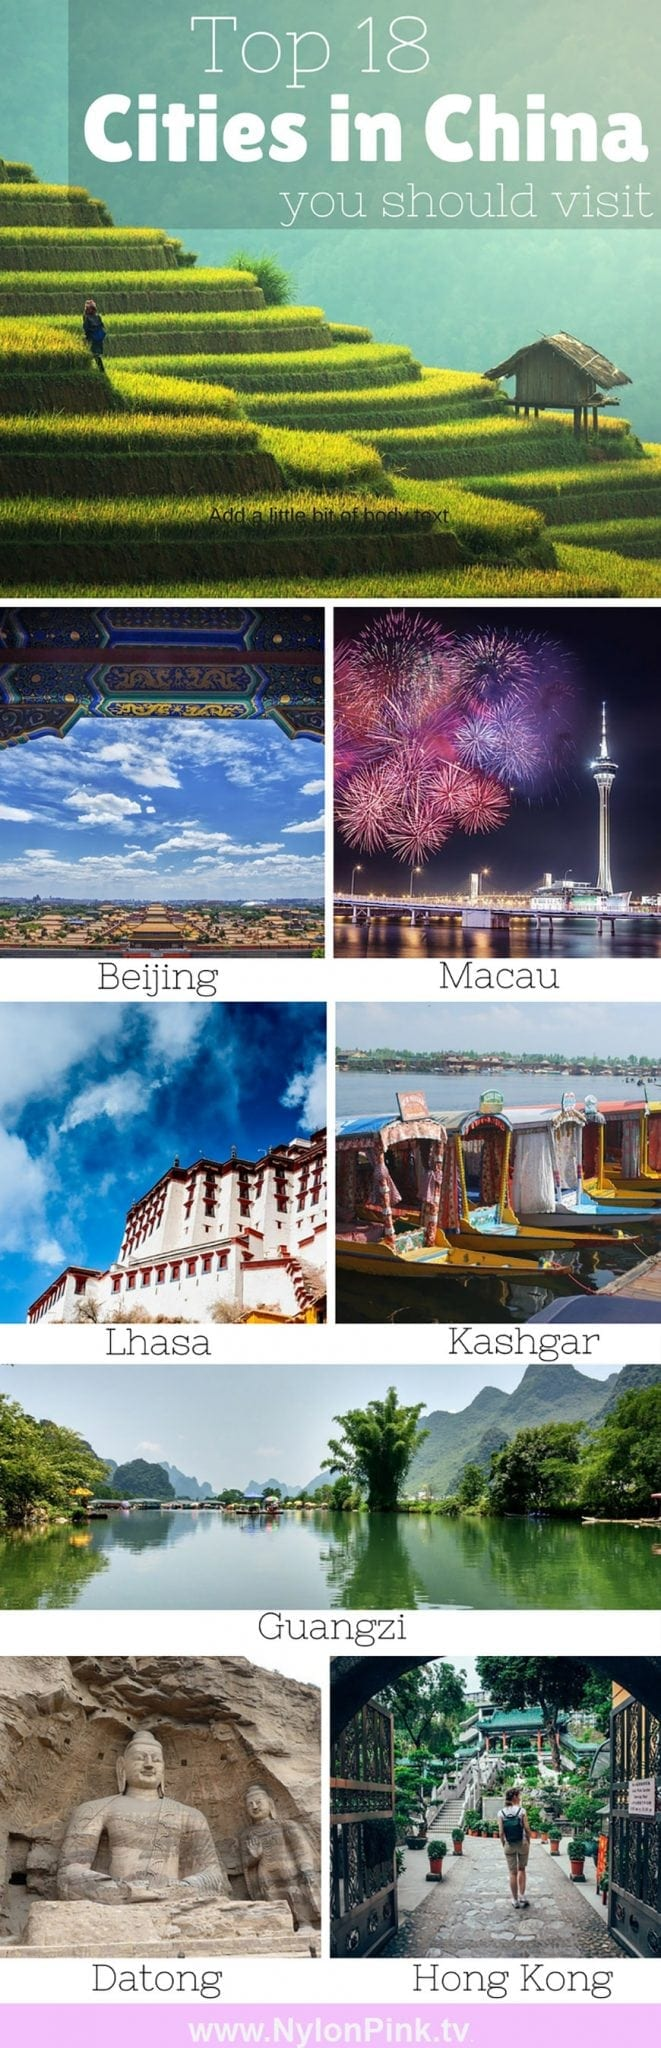 LIST OF BEST CITIES TO VISIT IN CHINA